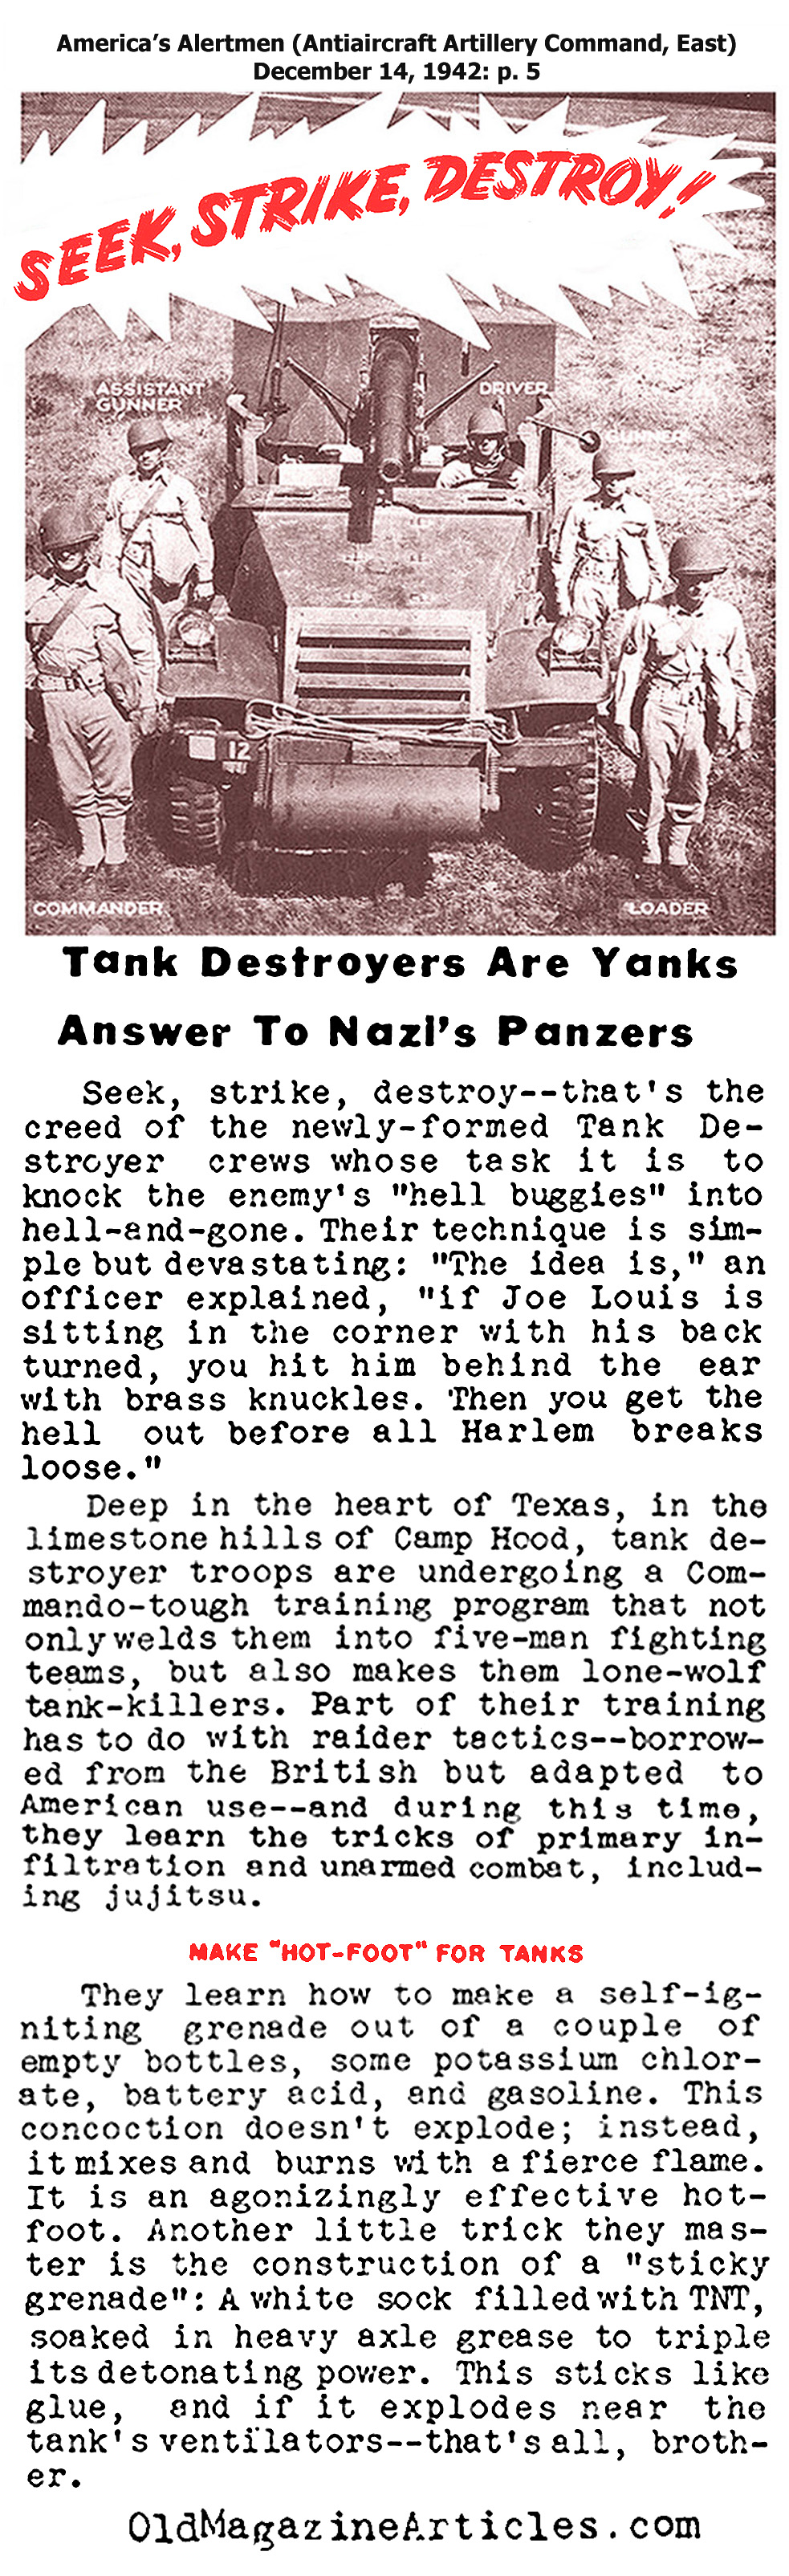 American Tank Destroyers (America's Alertmen, 1942)